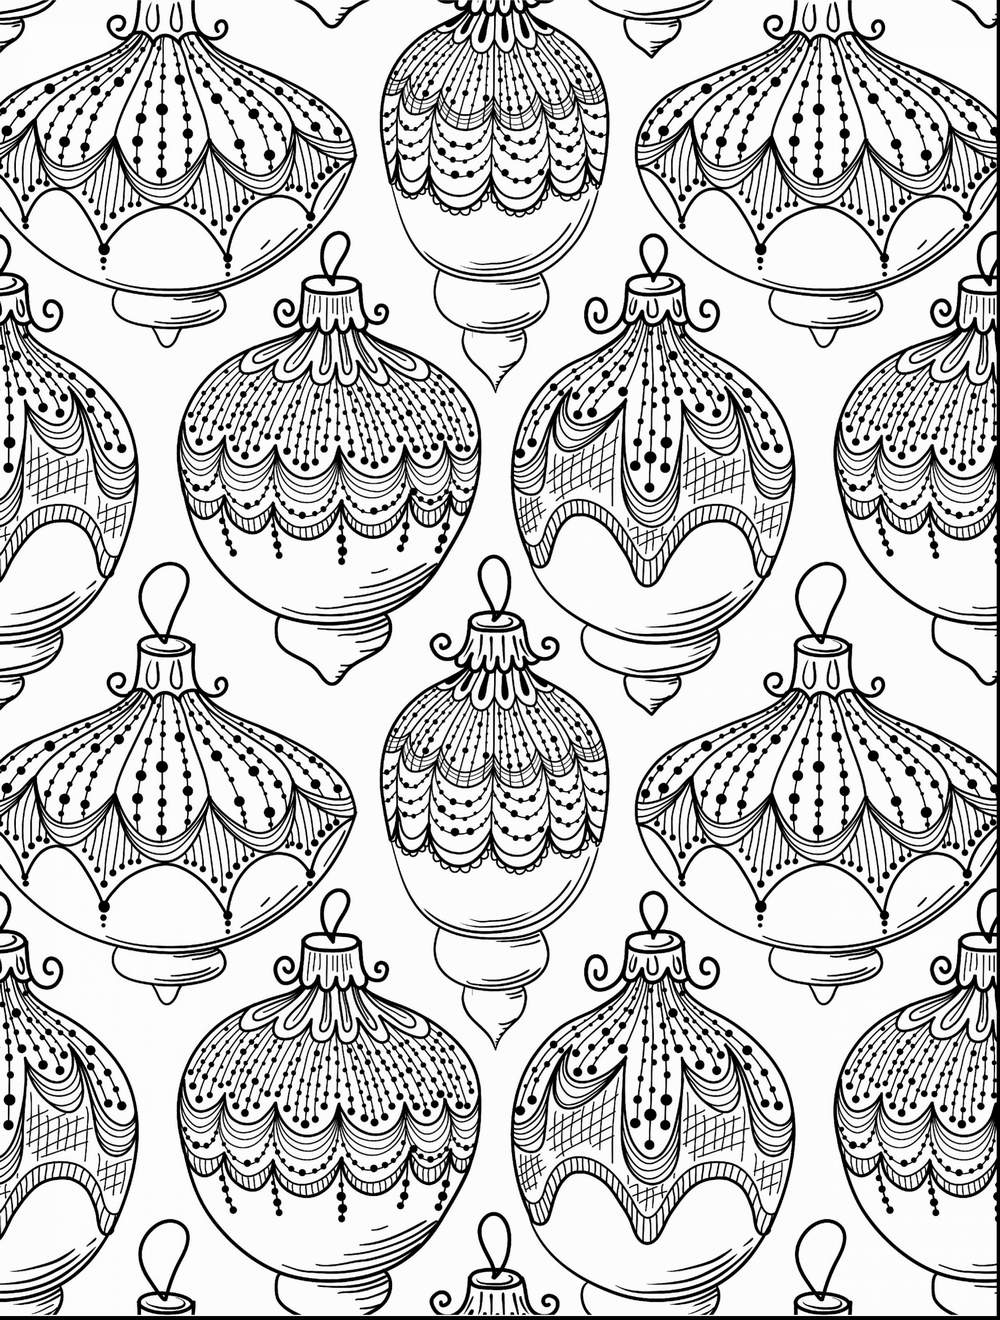 spectacular printable adult-coloring pages